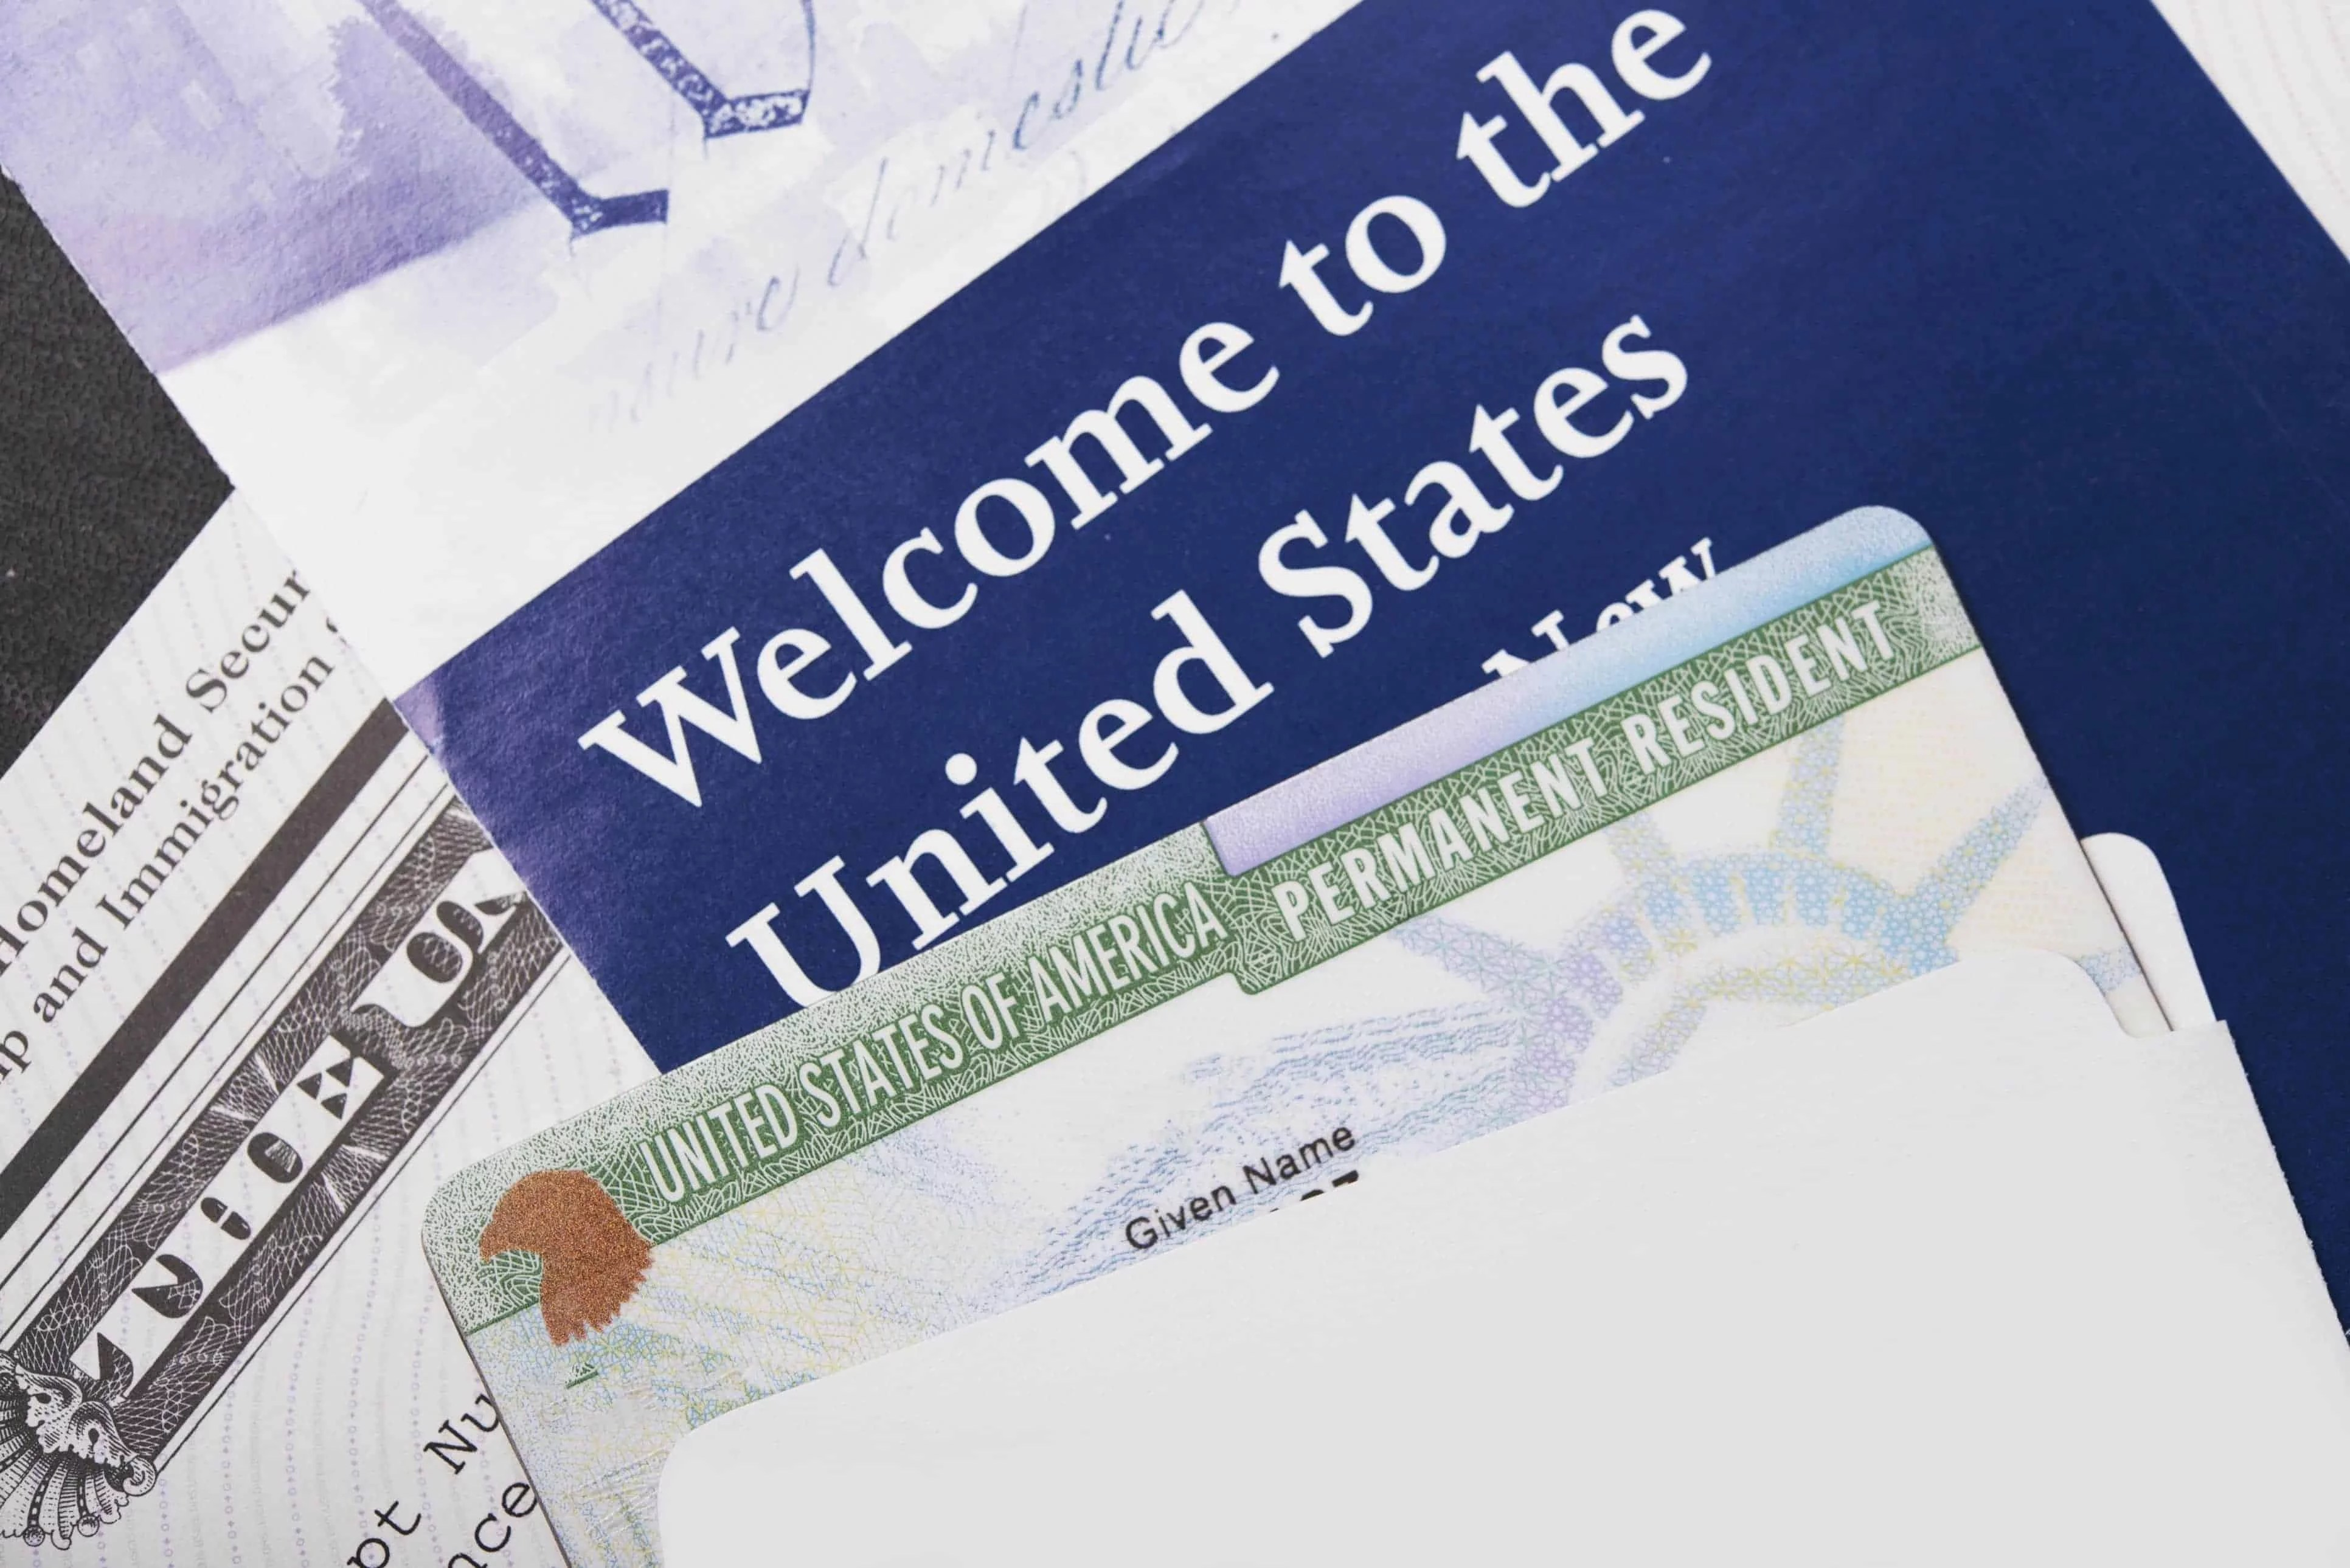 Videos | Information About New Jersey Immigration and Traffic Law